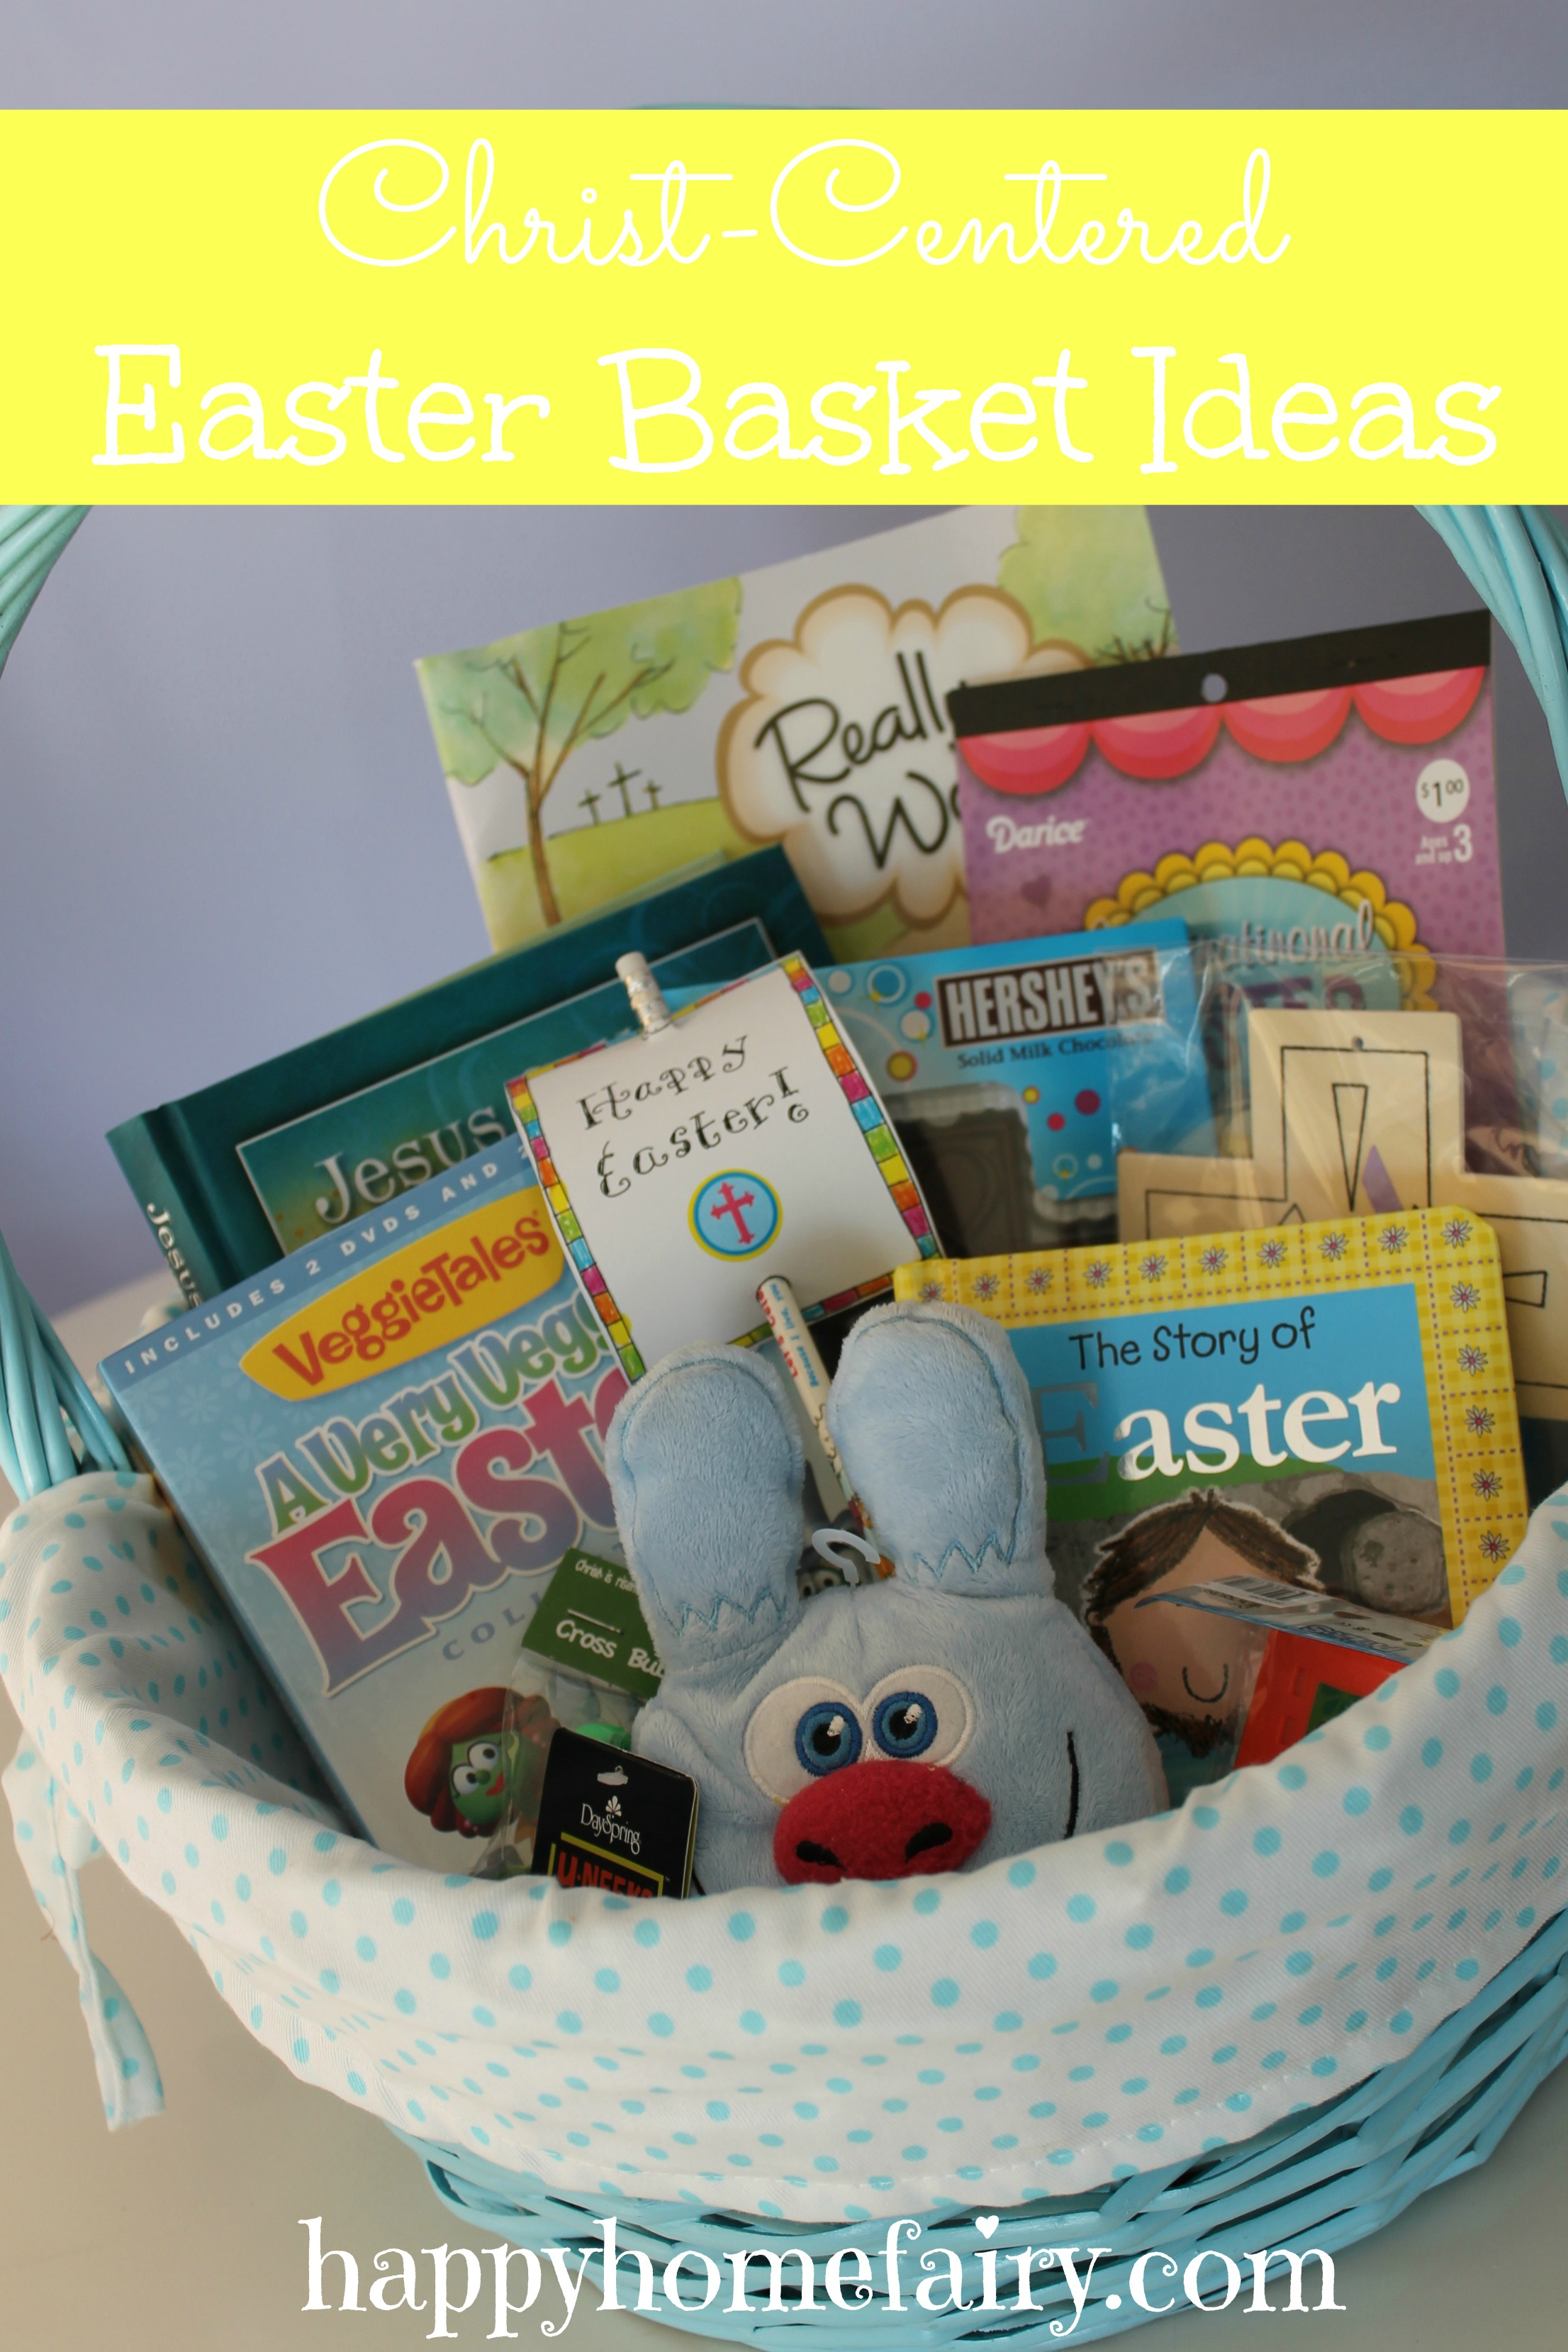 Beyond The Bunny Christ Centered Easter Tradition Ideas